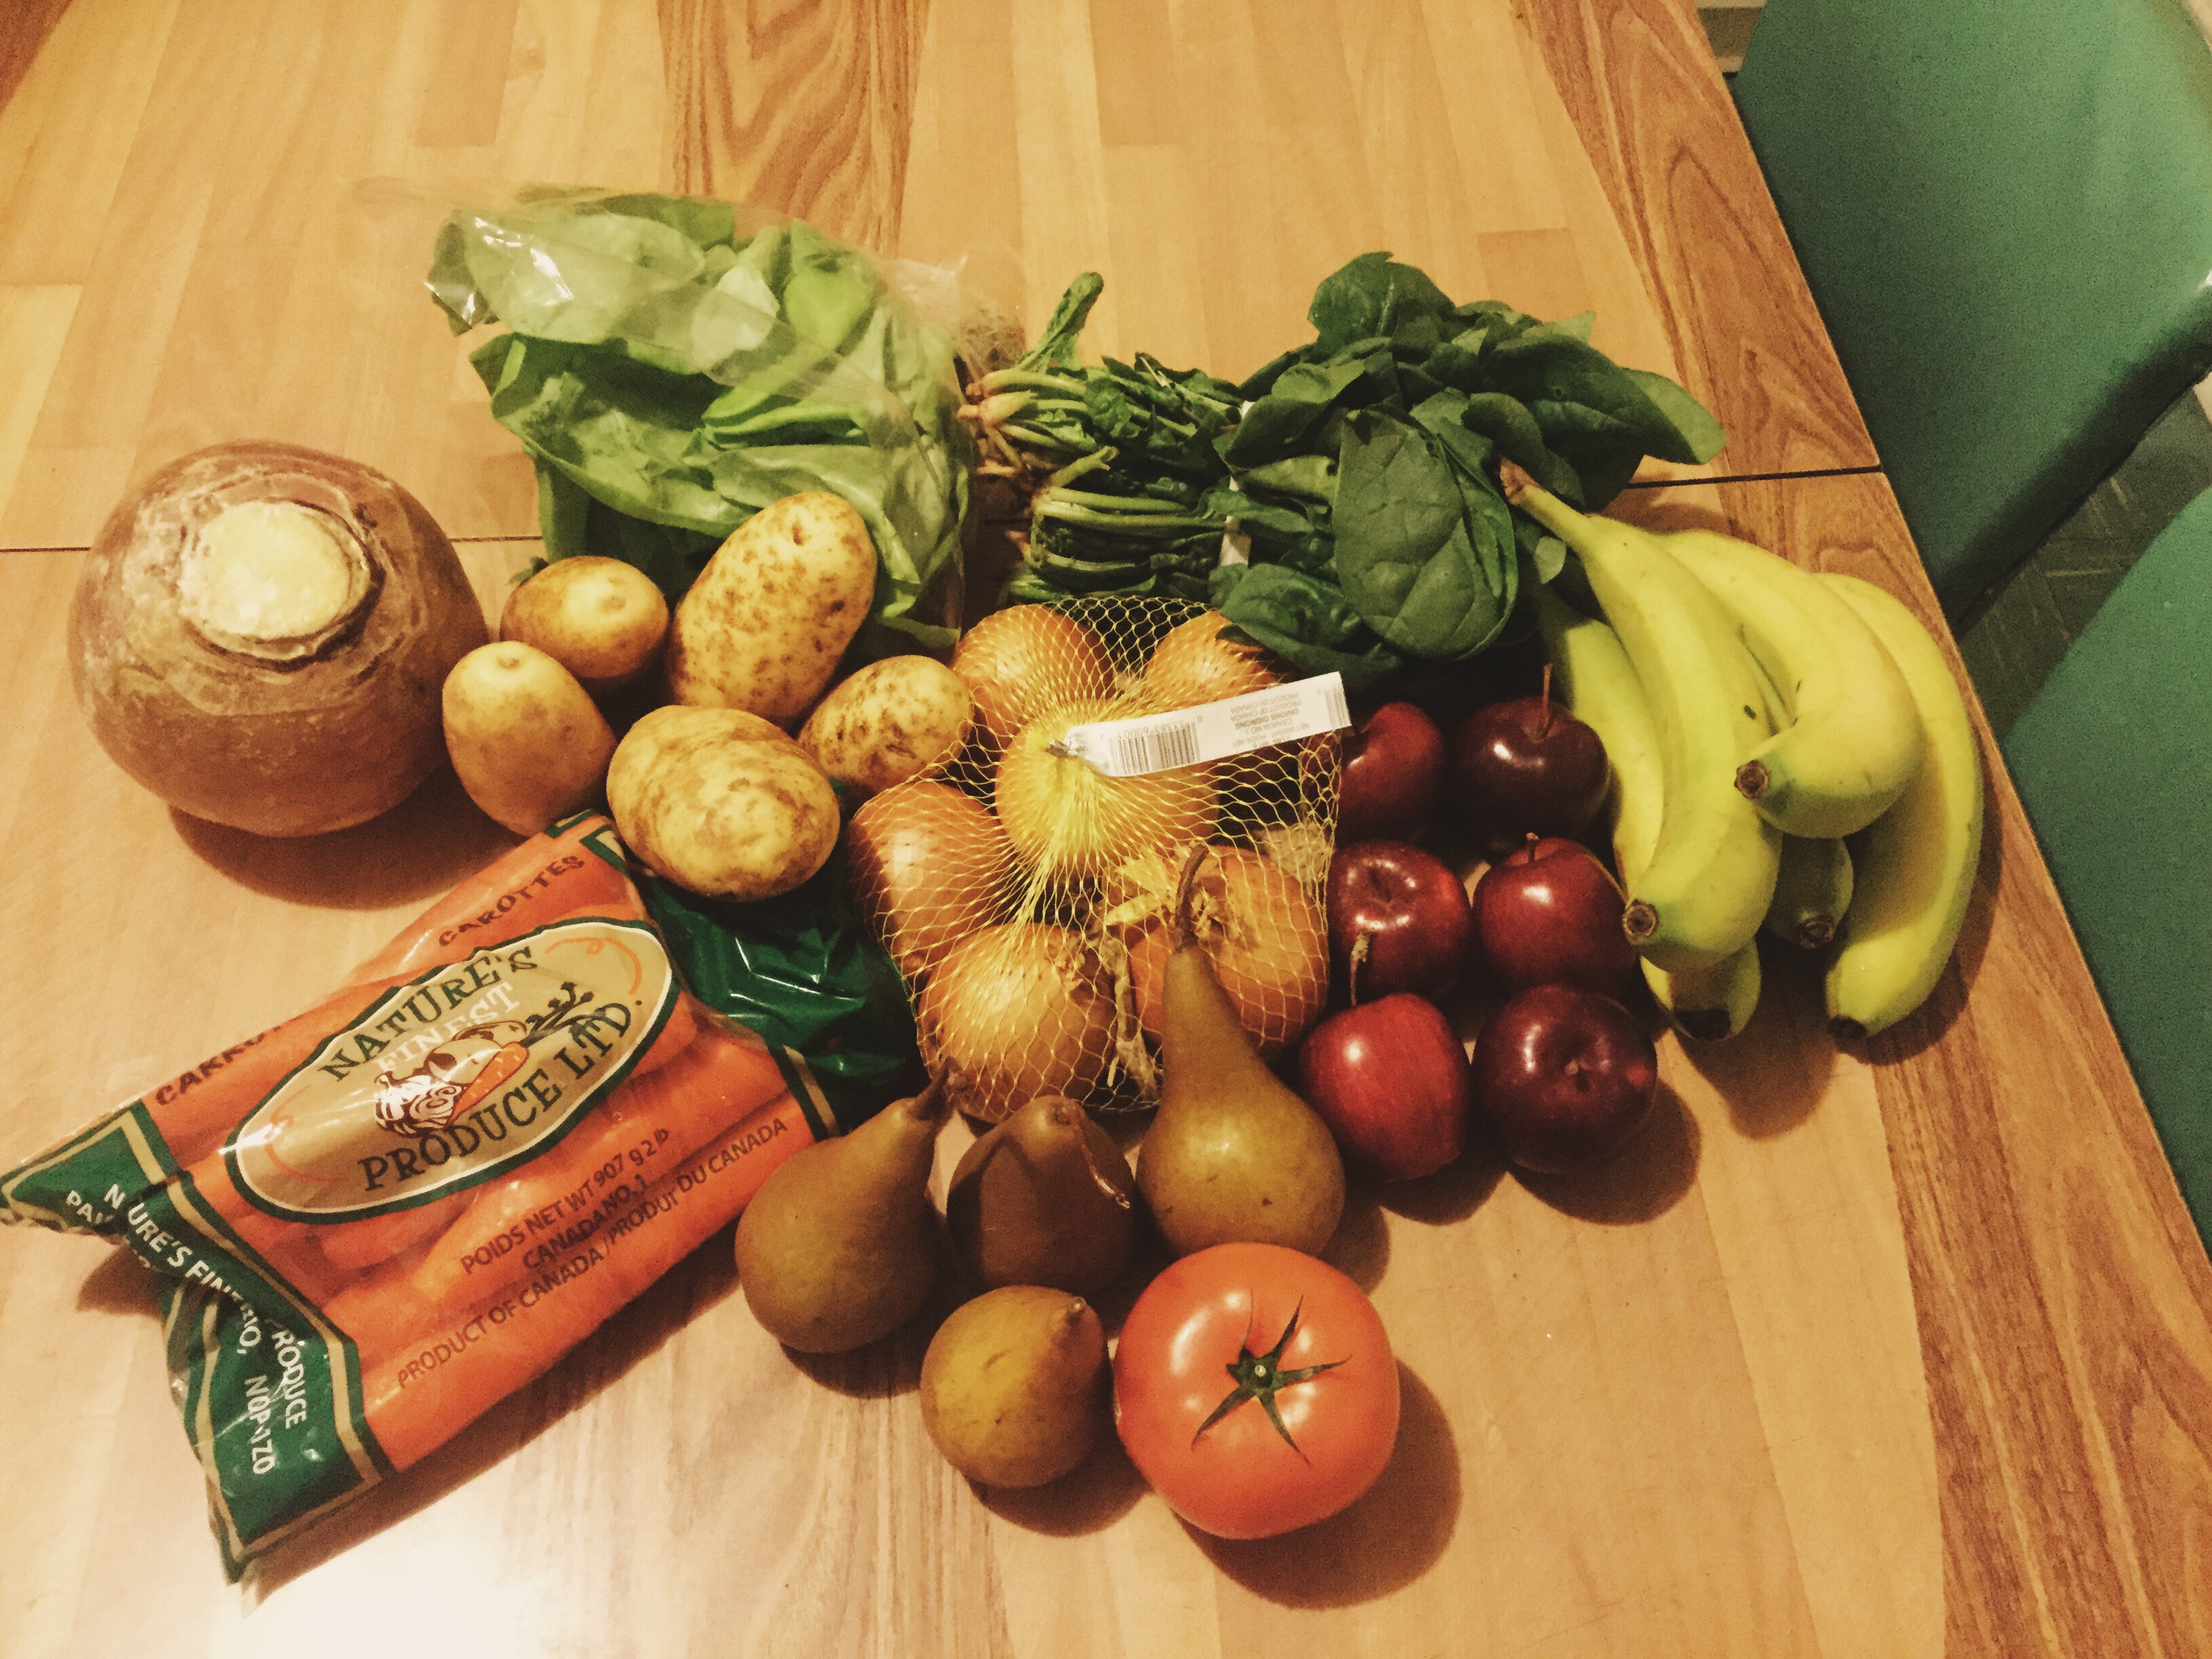 A selection of fresh produce on my dining table including a bag of carrots, potatos, bananas, pears, applies, spinach, lettuce, a bag of onions, and a singular tomato.